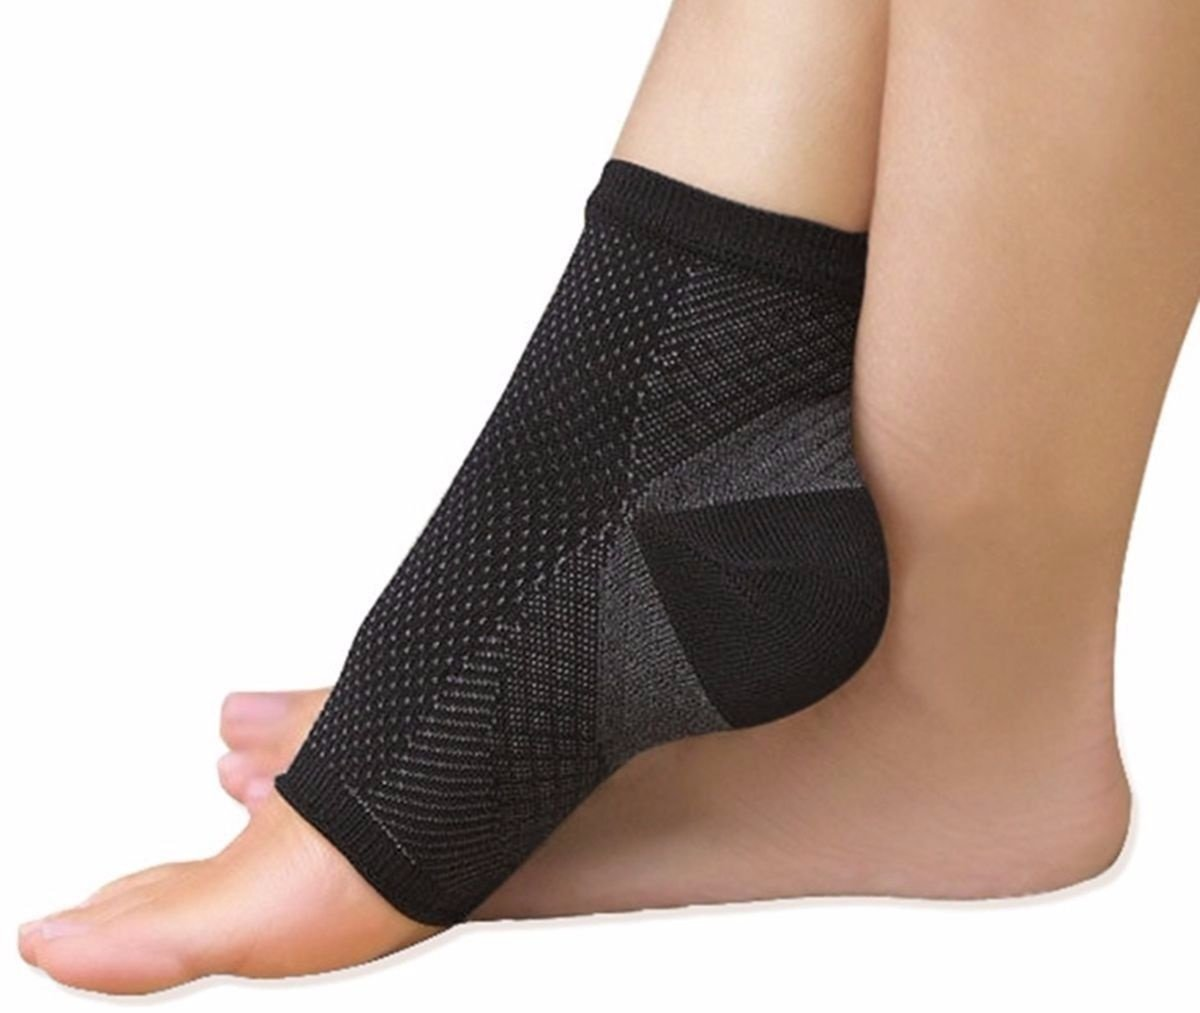 PU Health 10 Point Plantar Fasciitis Compression Sleeve, Multi-Colored, 1 Pounds